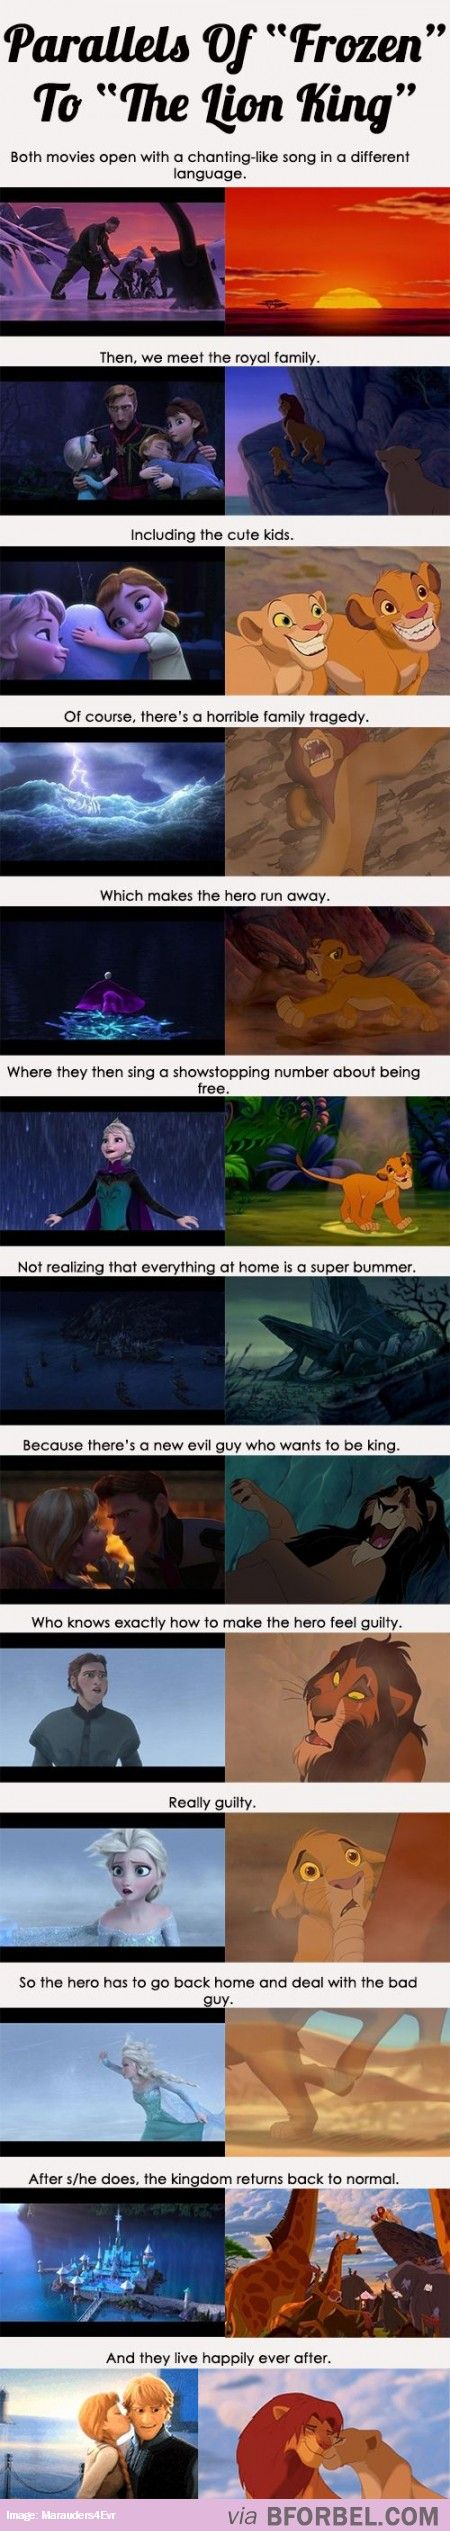 Frozen And The Lion King: Same Formula Different Movie…